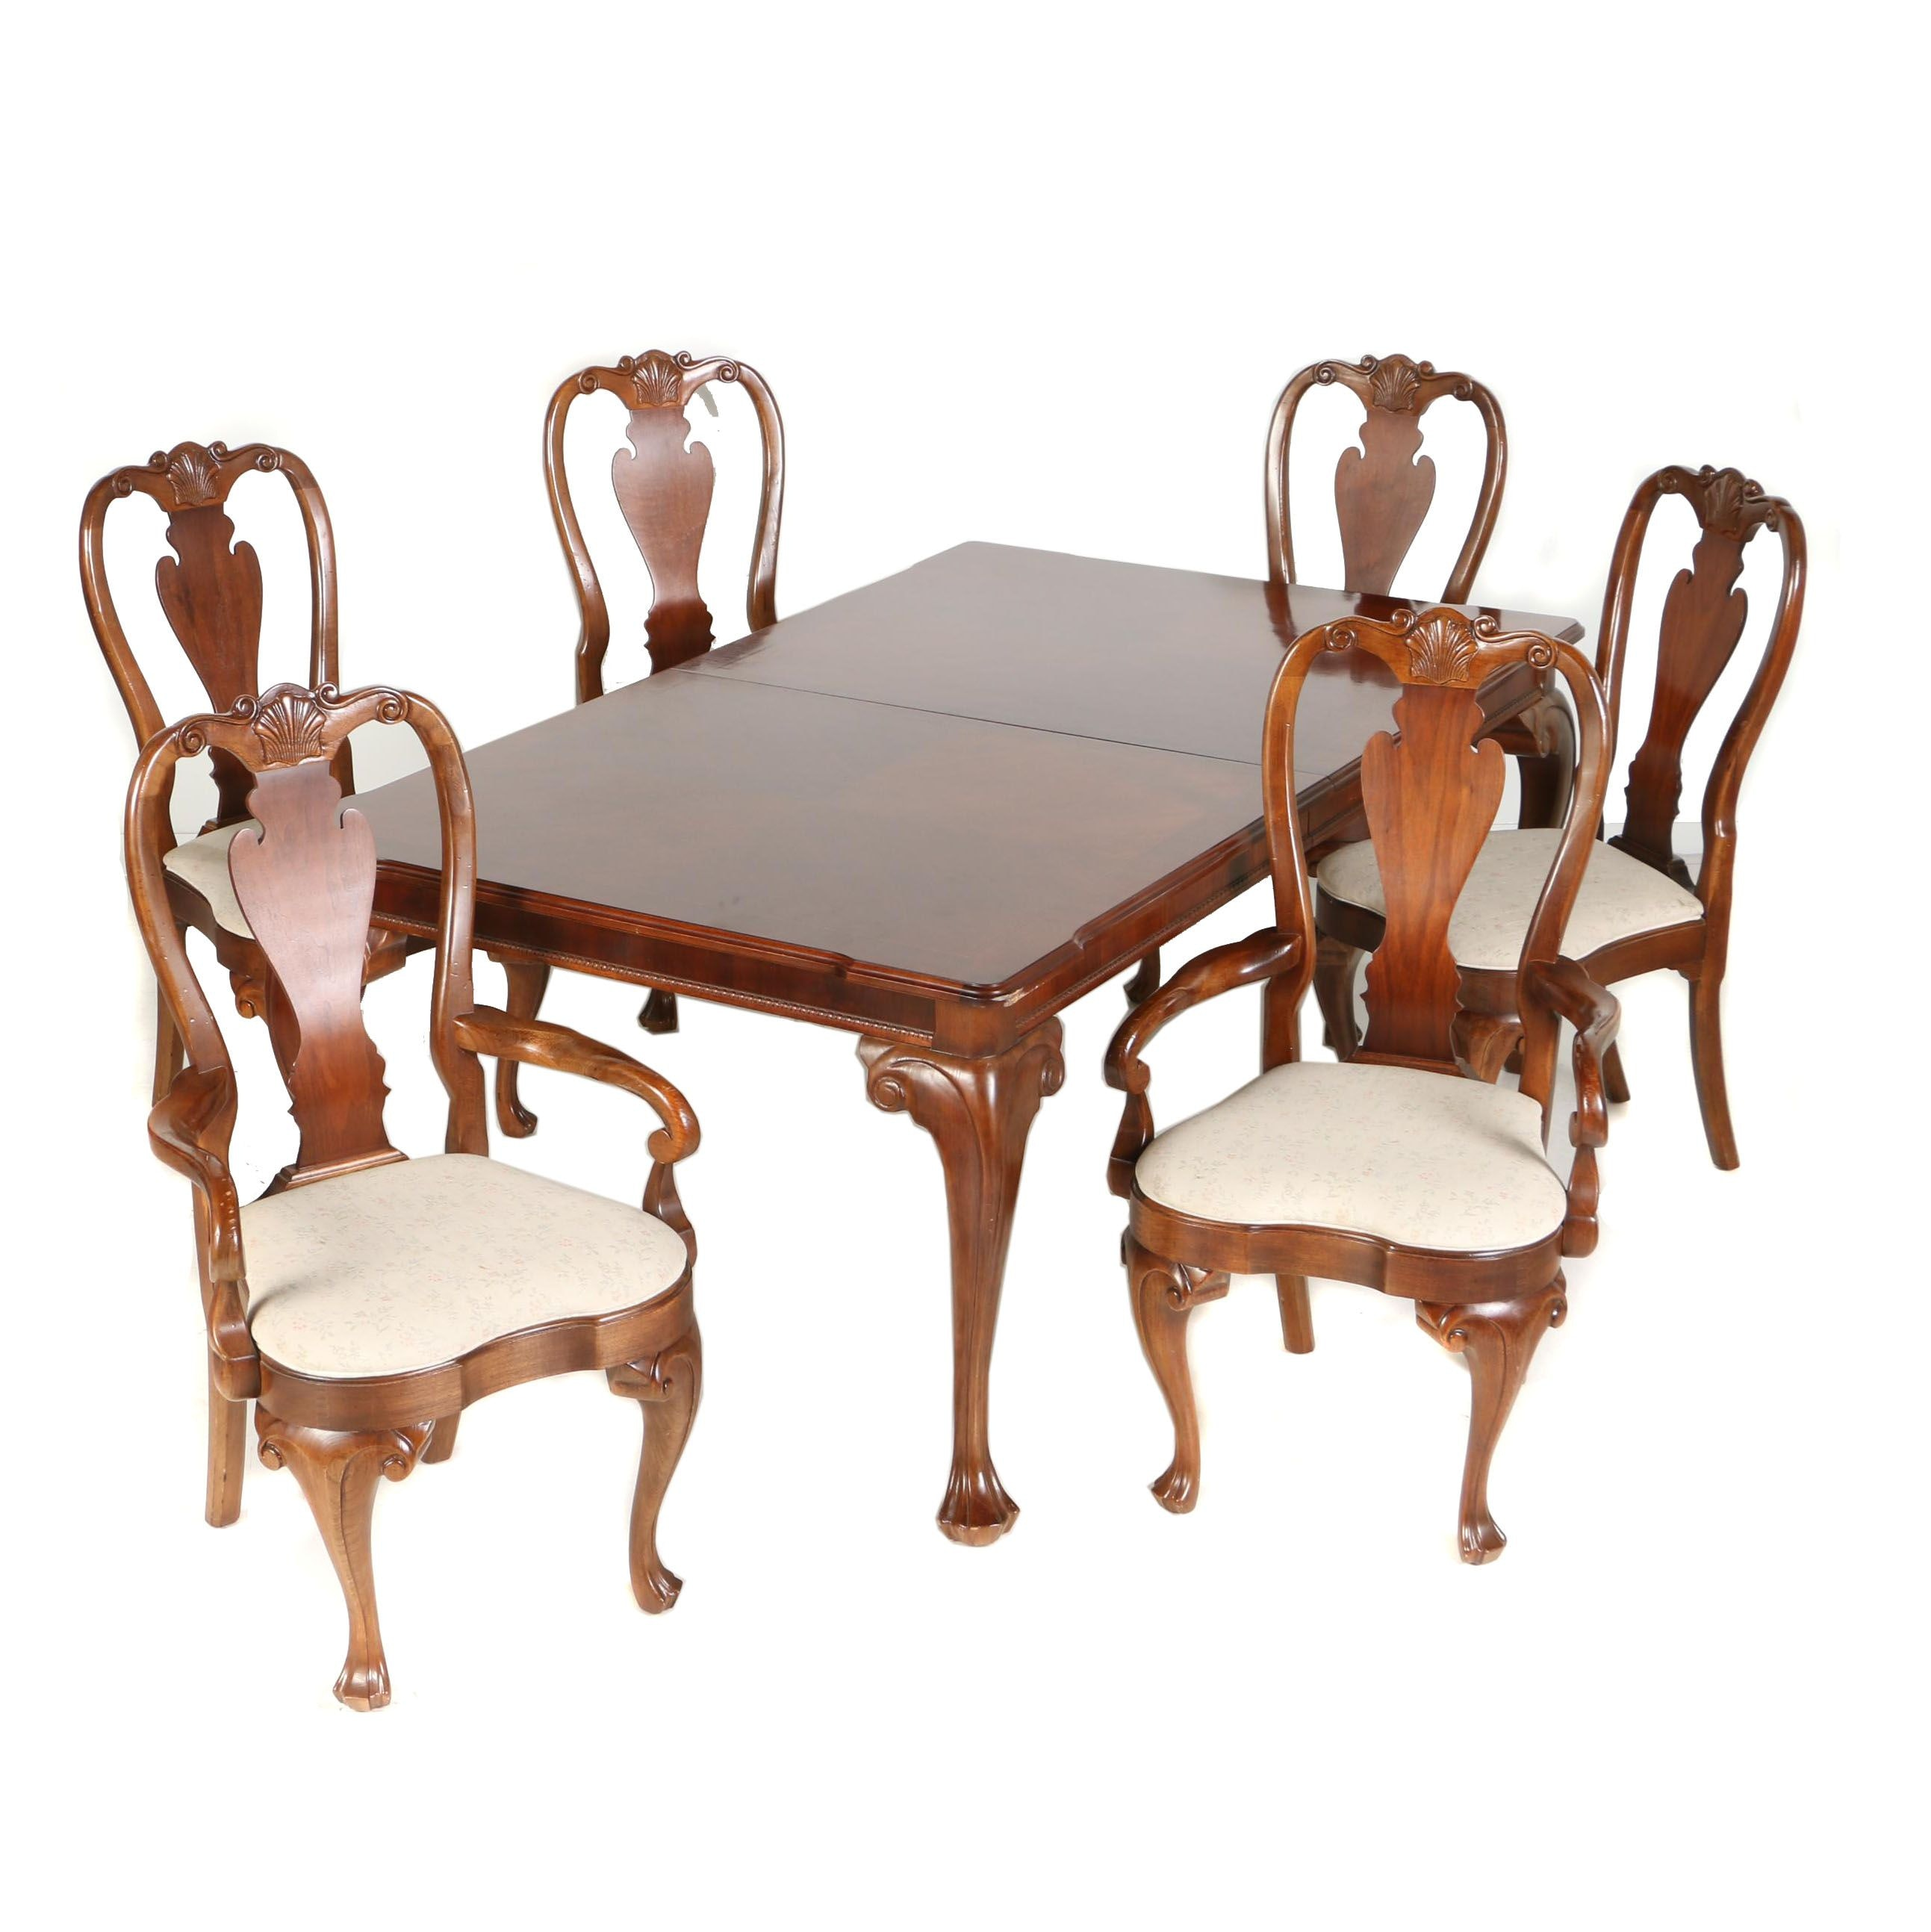 Georgian Style Mahogany Seven-Piece Dining Set by Bernhardt, 20th Century